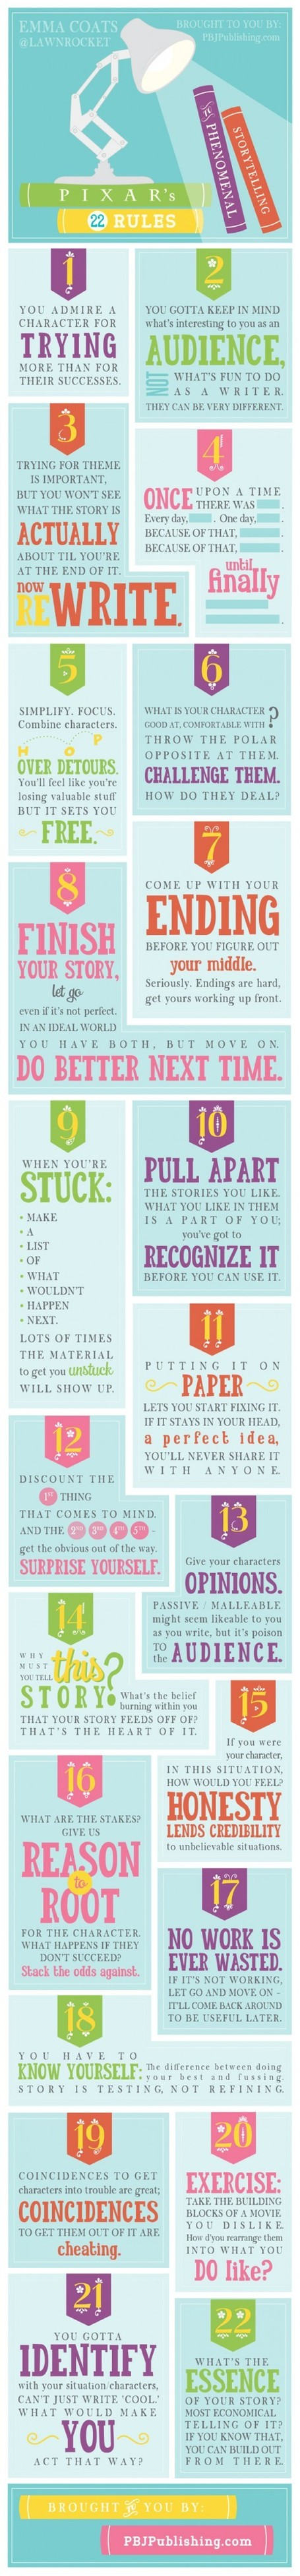 Pixar's 22 Rules to Phenomenal Storytelling [INFOGRAPHIC] | Tocquigny's Digital Marketing Daily | Scoop.it